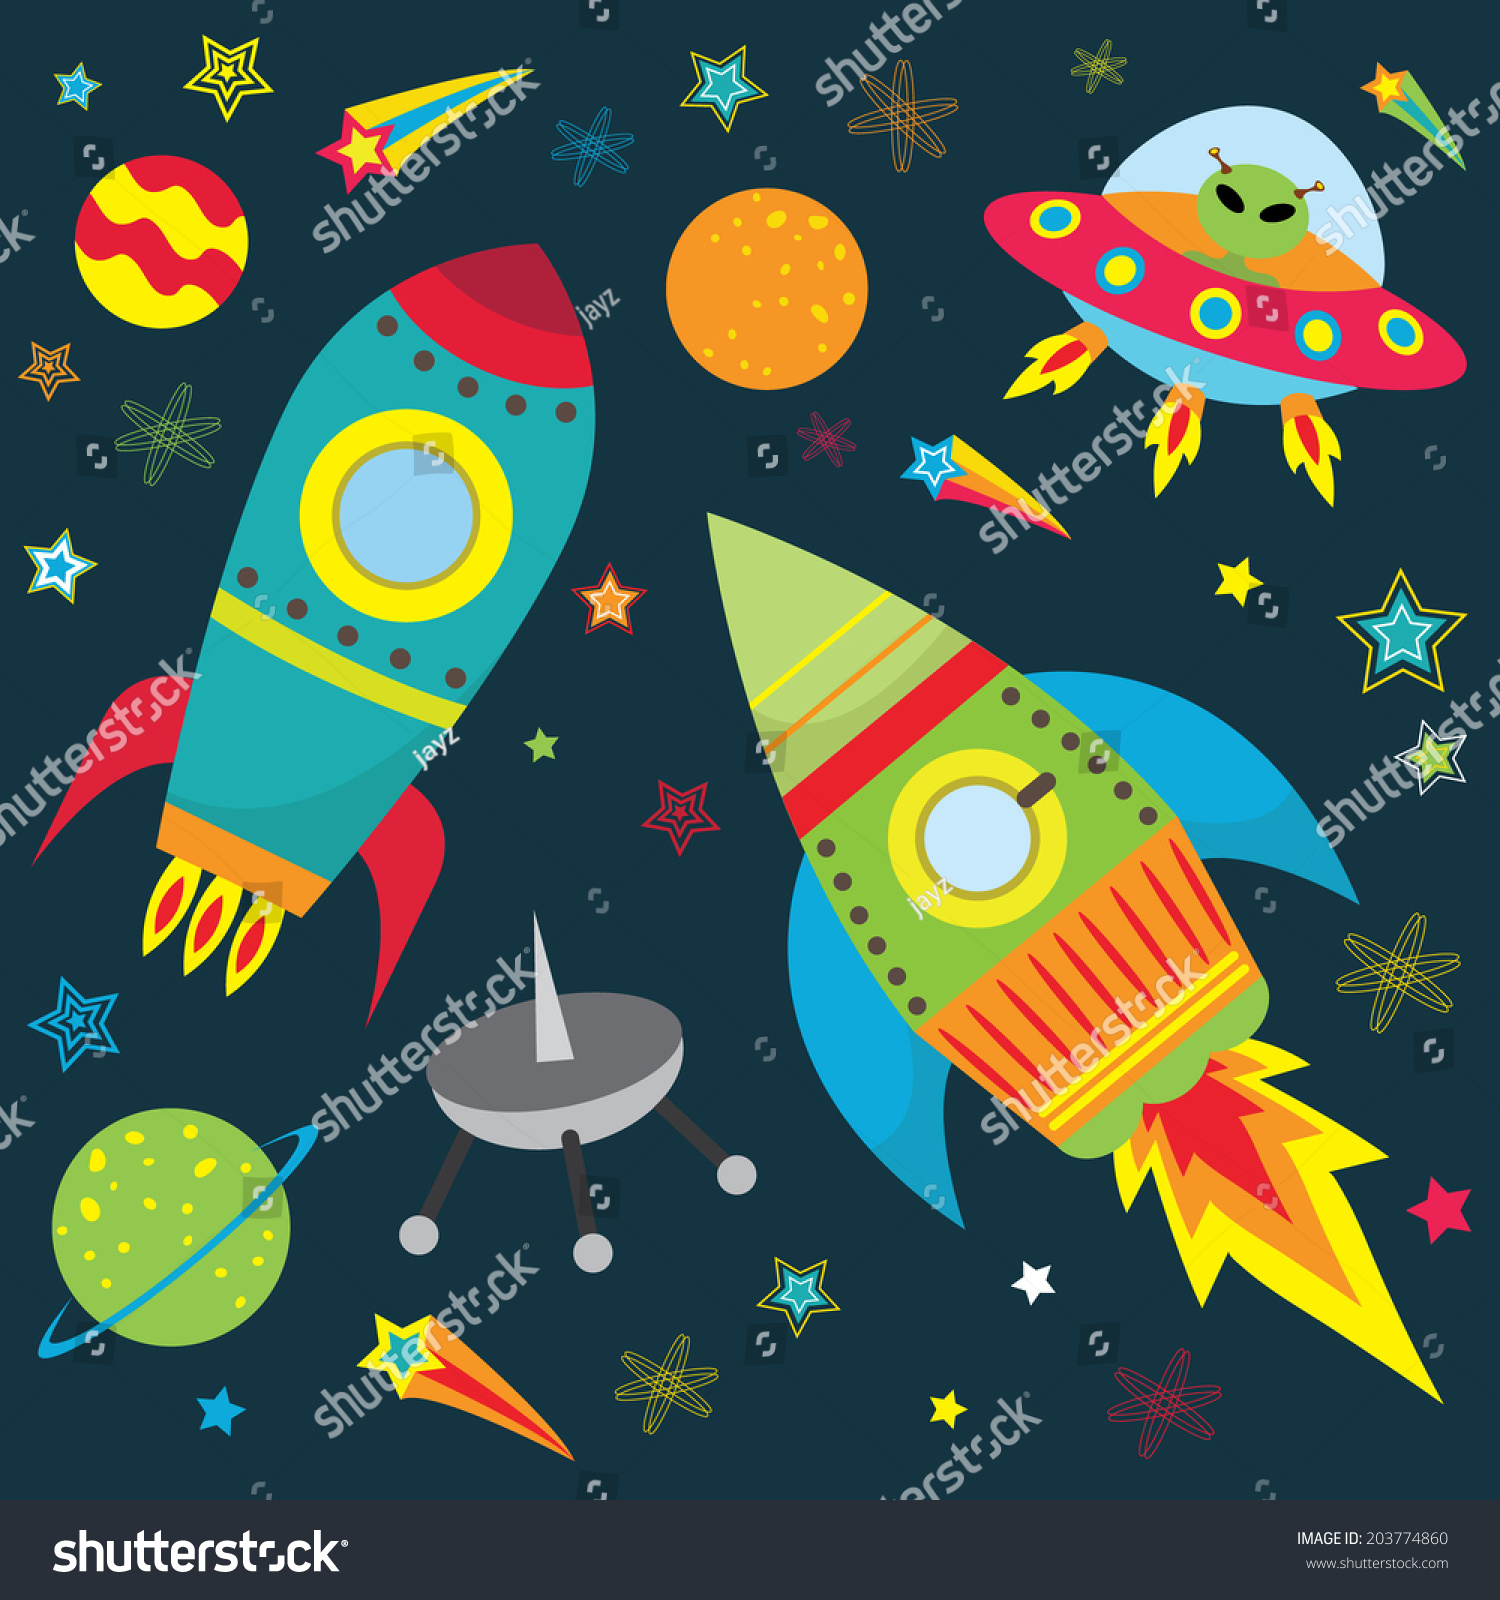 outer space design set illustration stock vector 203774860